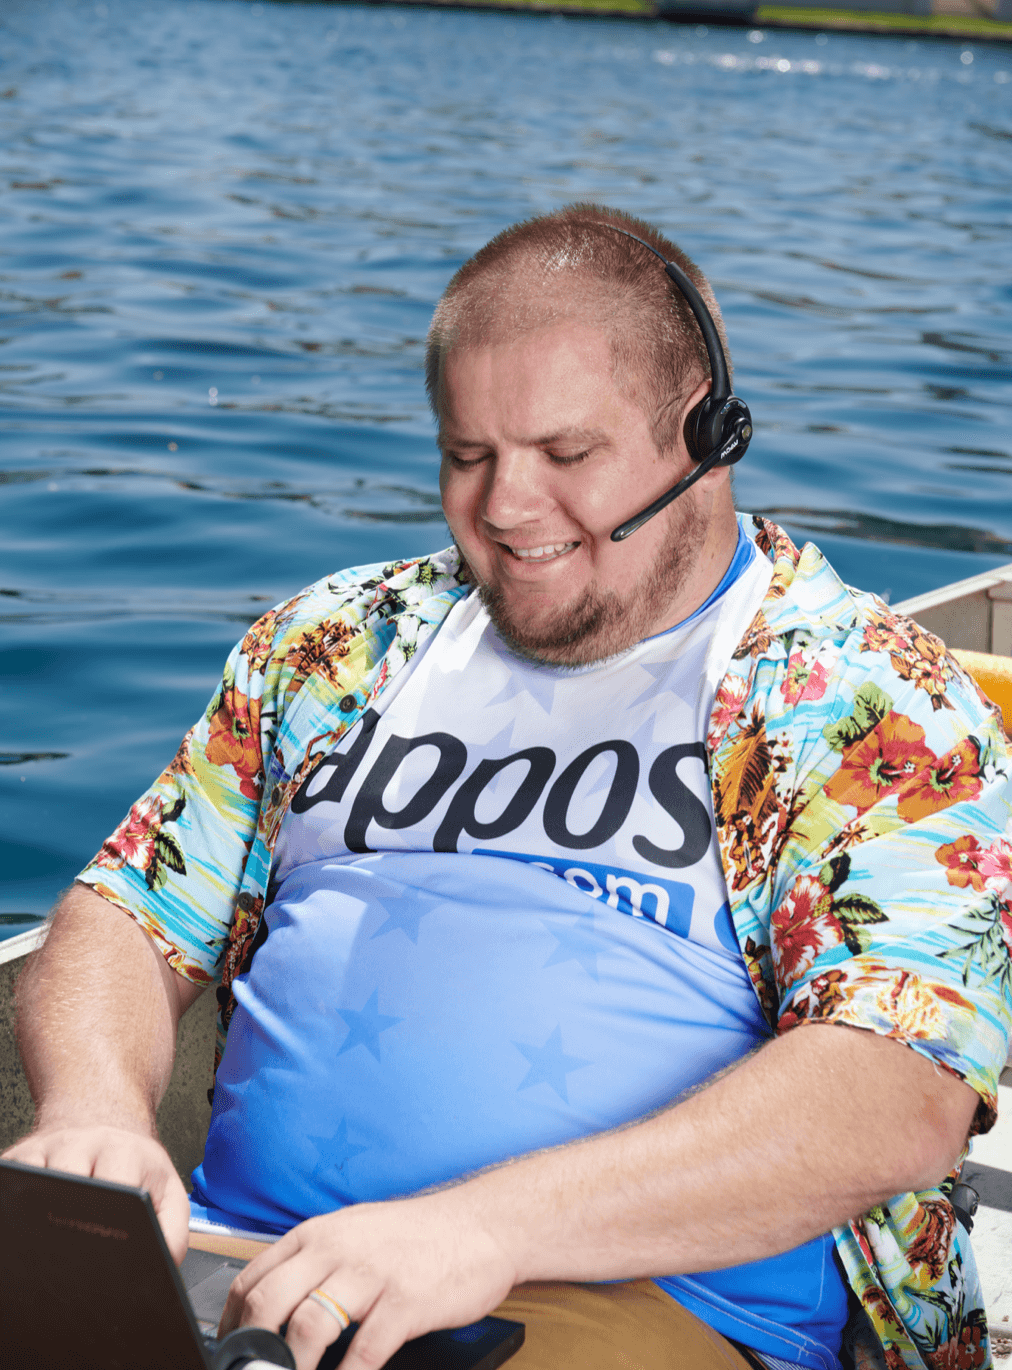 Zappos Customer Service is here to help you with anything